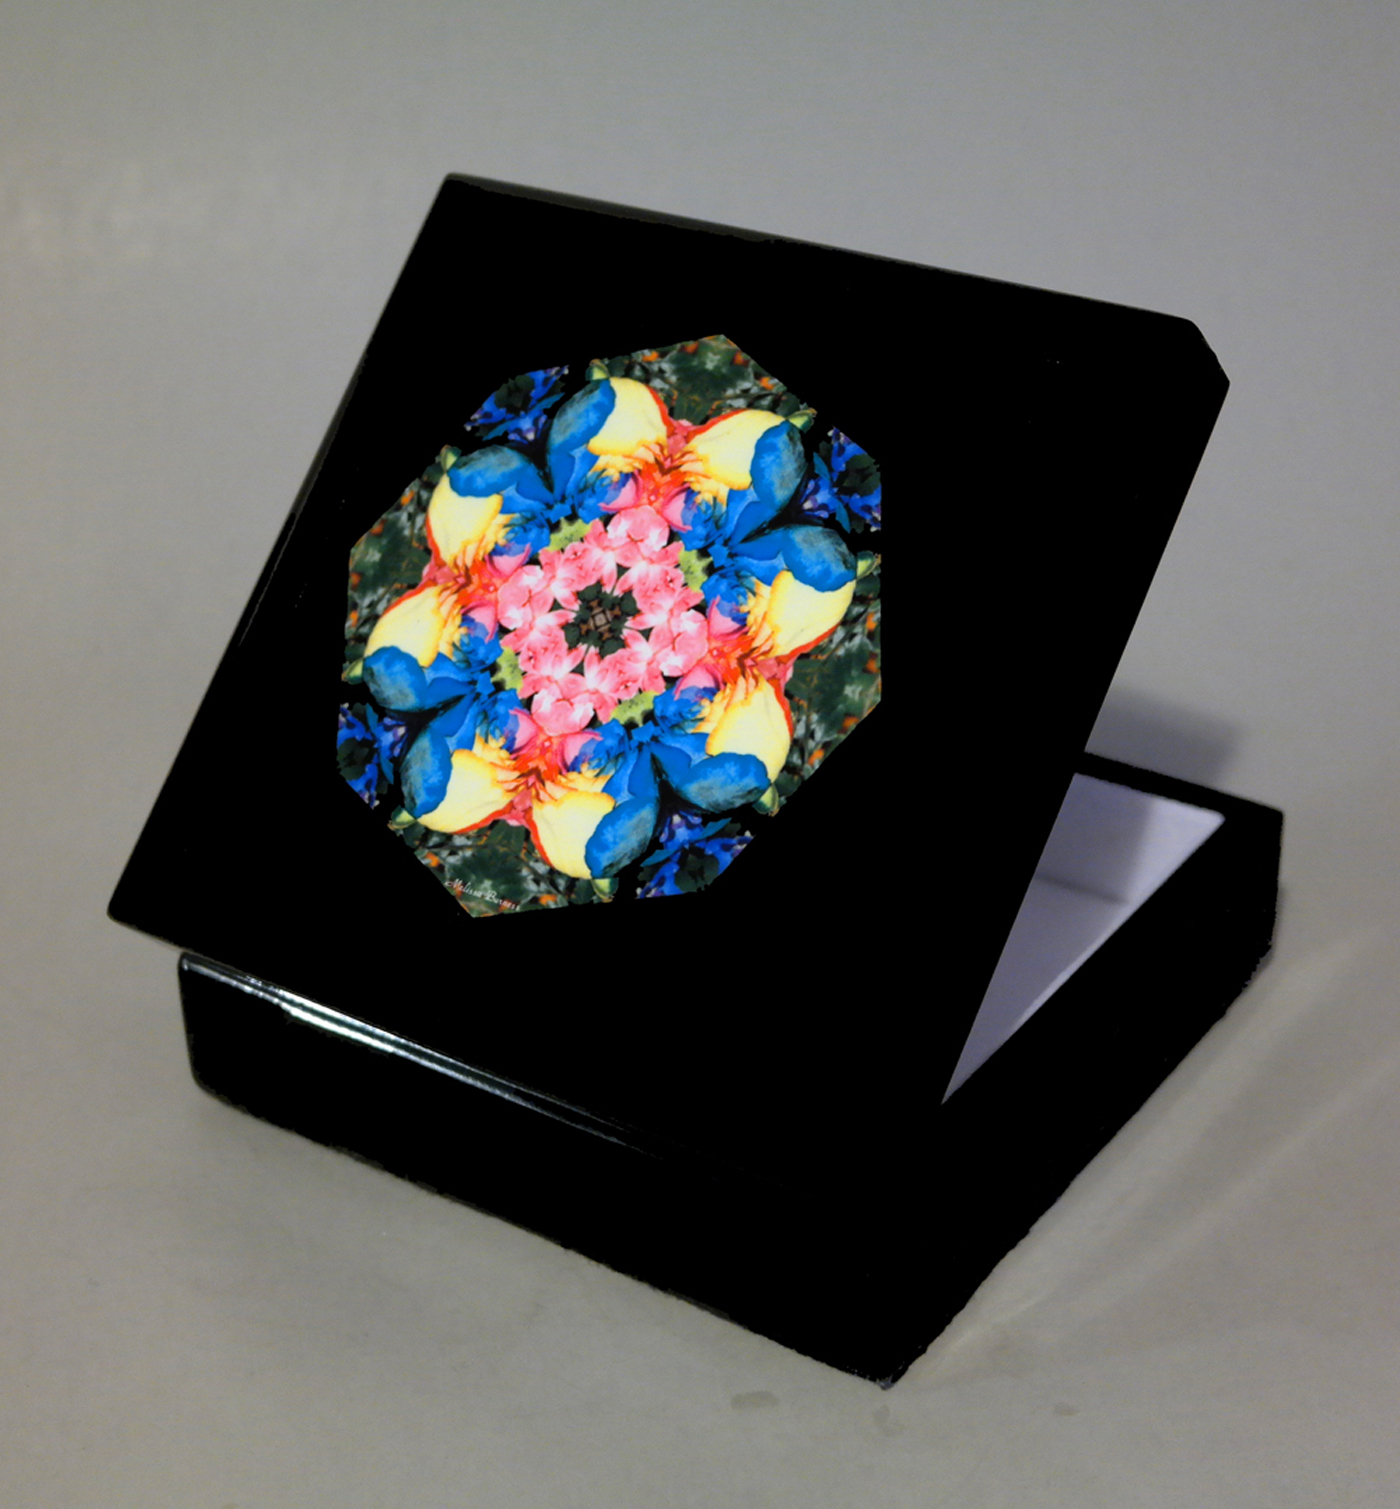 Rainbow Rose Music Box Keepsake Box Trinket Box Jewelry Box Boho Chic Mandala New Age Sacred Geometry Hippie Kaleidoscope Unique Gift For Her Flamboyant Harmony